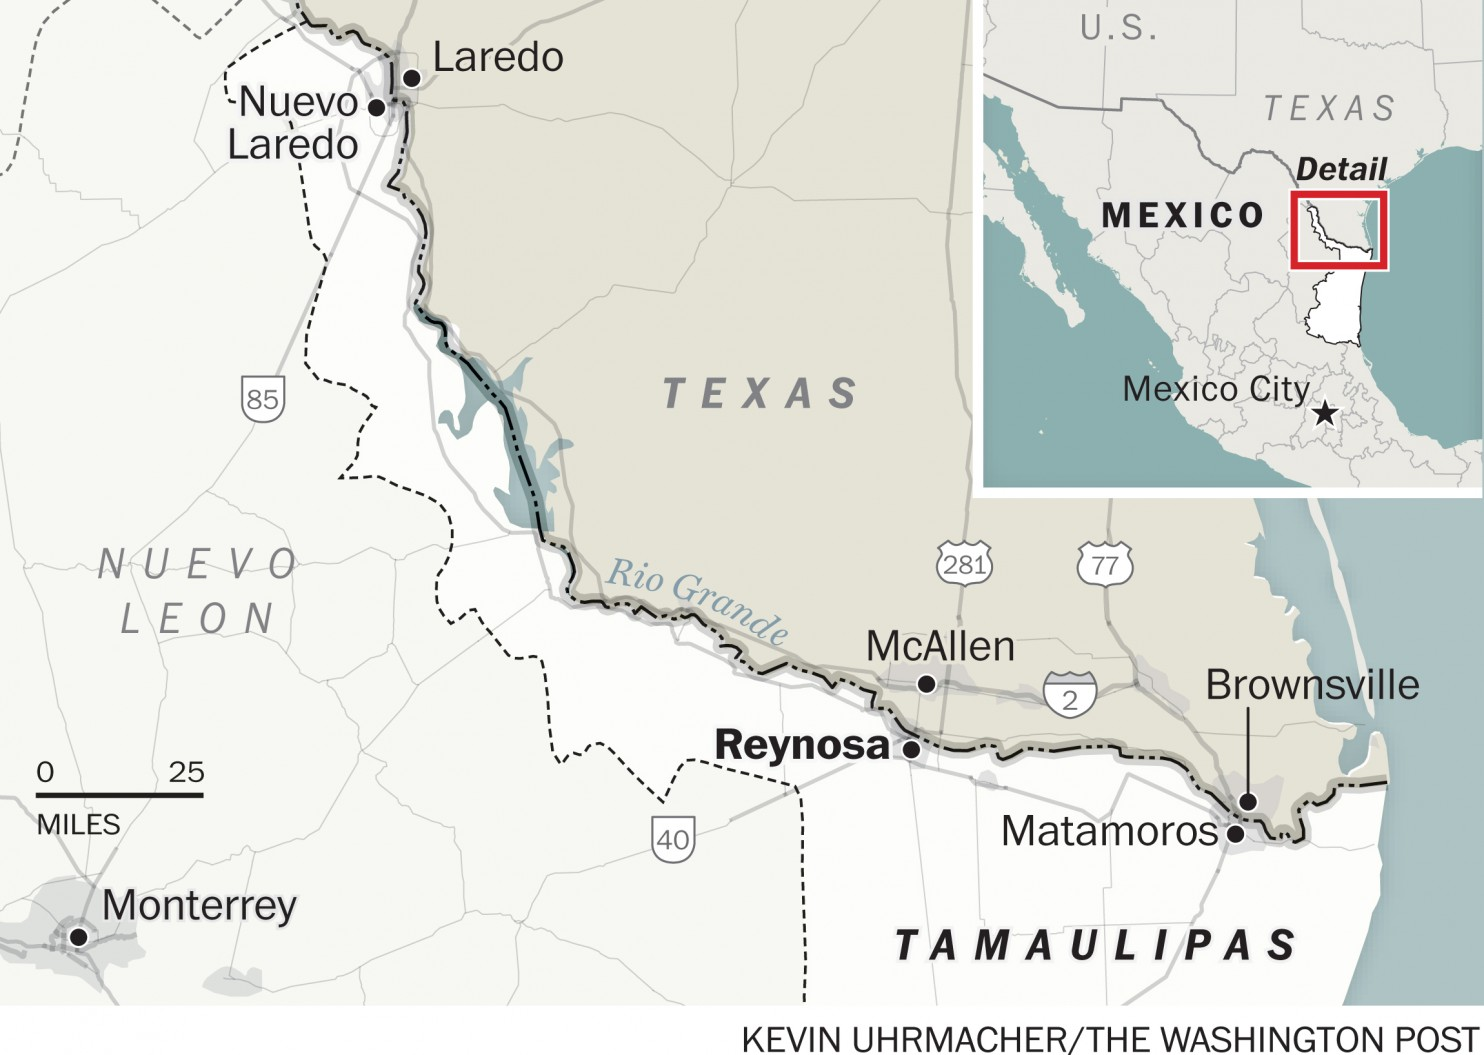 Map of Reynosa's location near the border with Texas